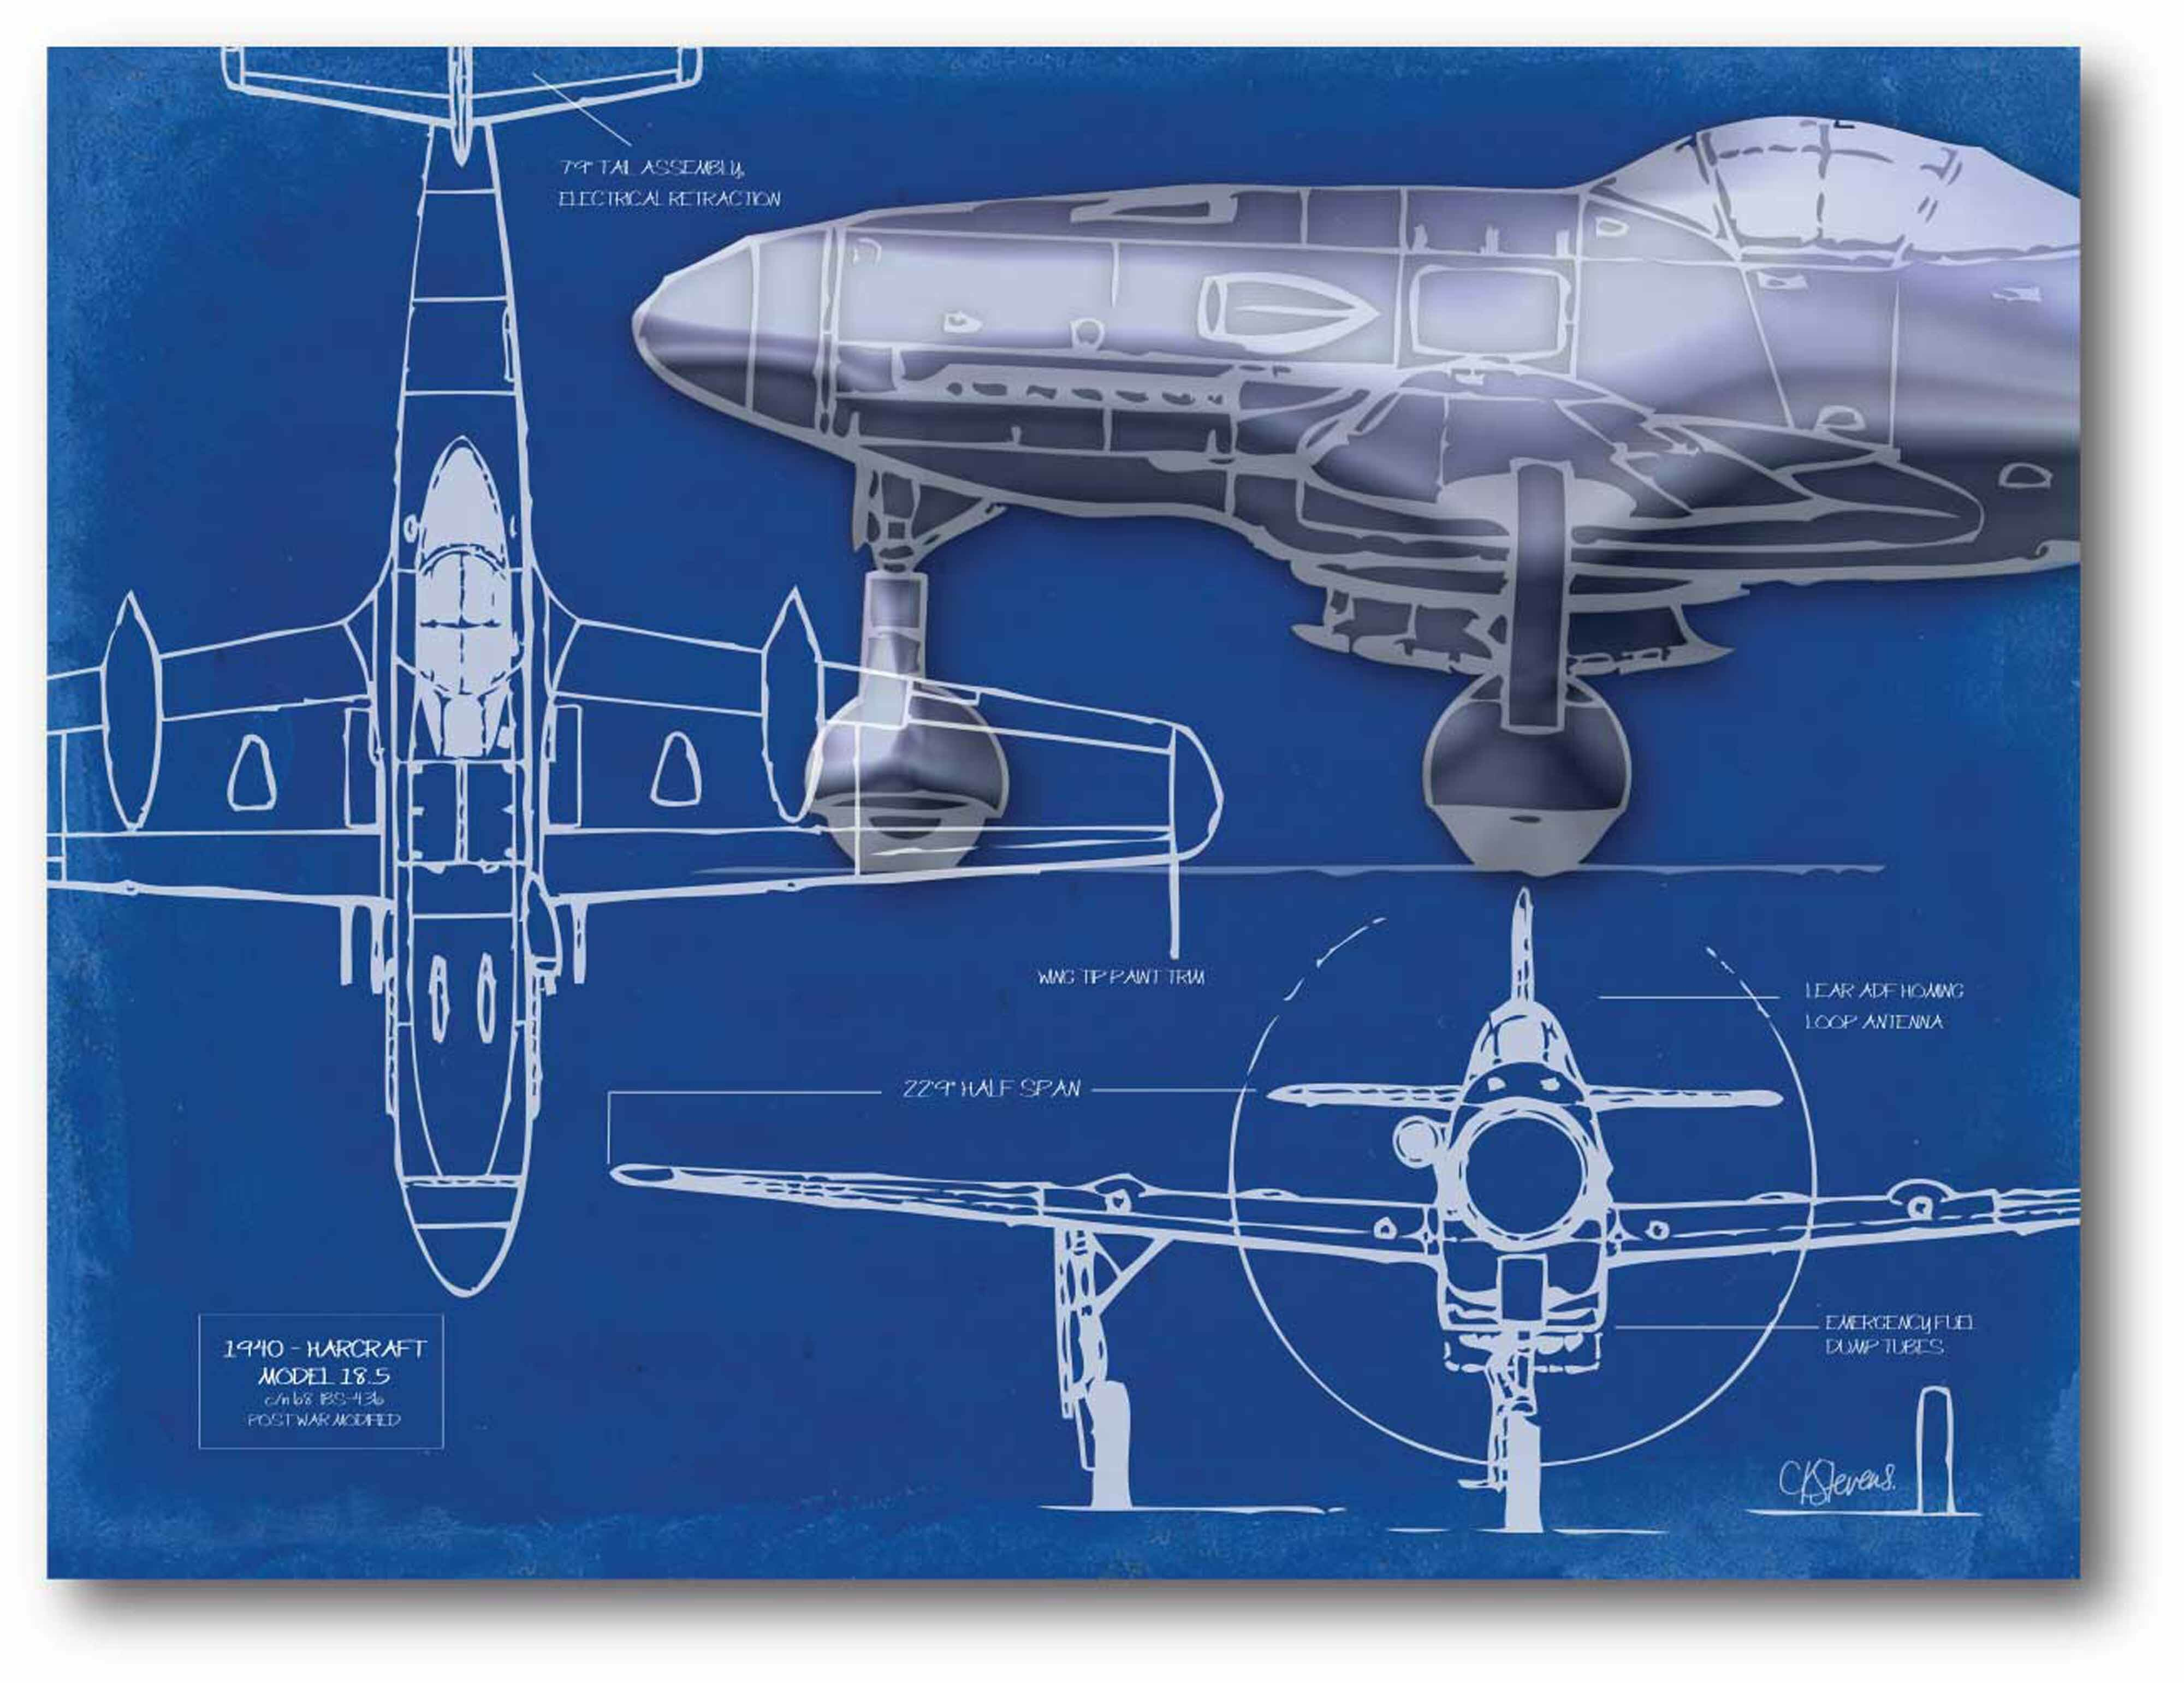 Williston forge airplane blueprint 2 graphic art print on williston forge airplane blueprint 2 graphic art print on stretched canvas wayfair malvernweather Images